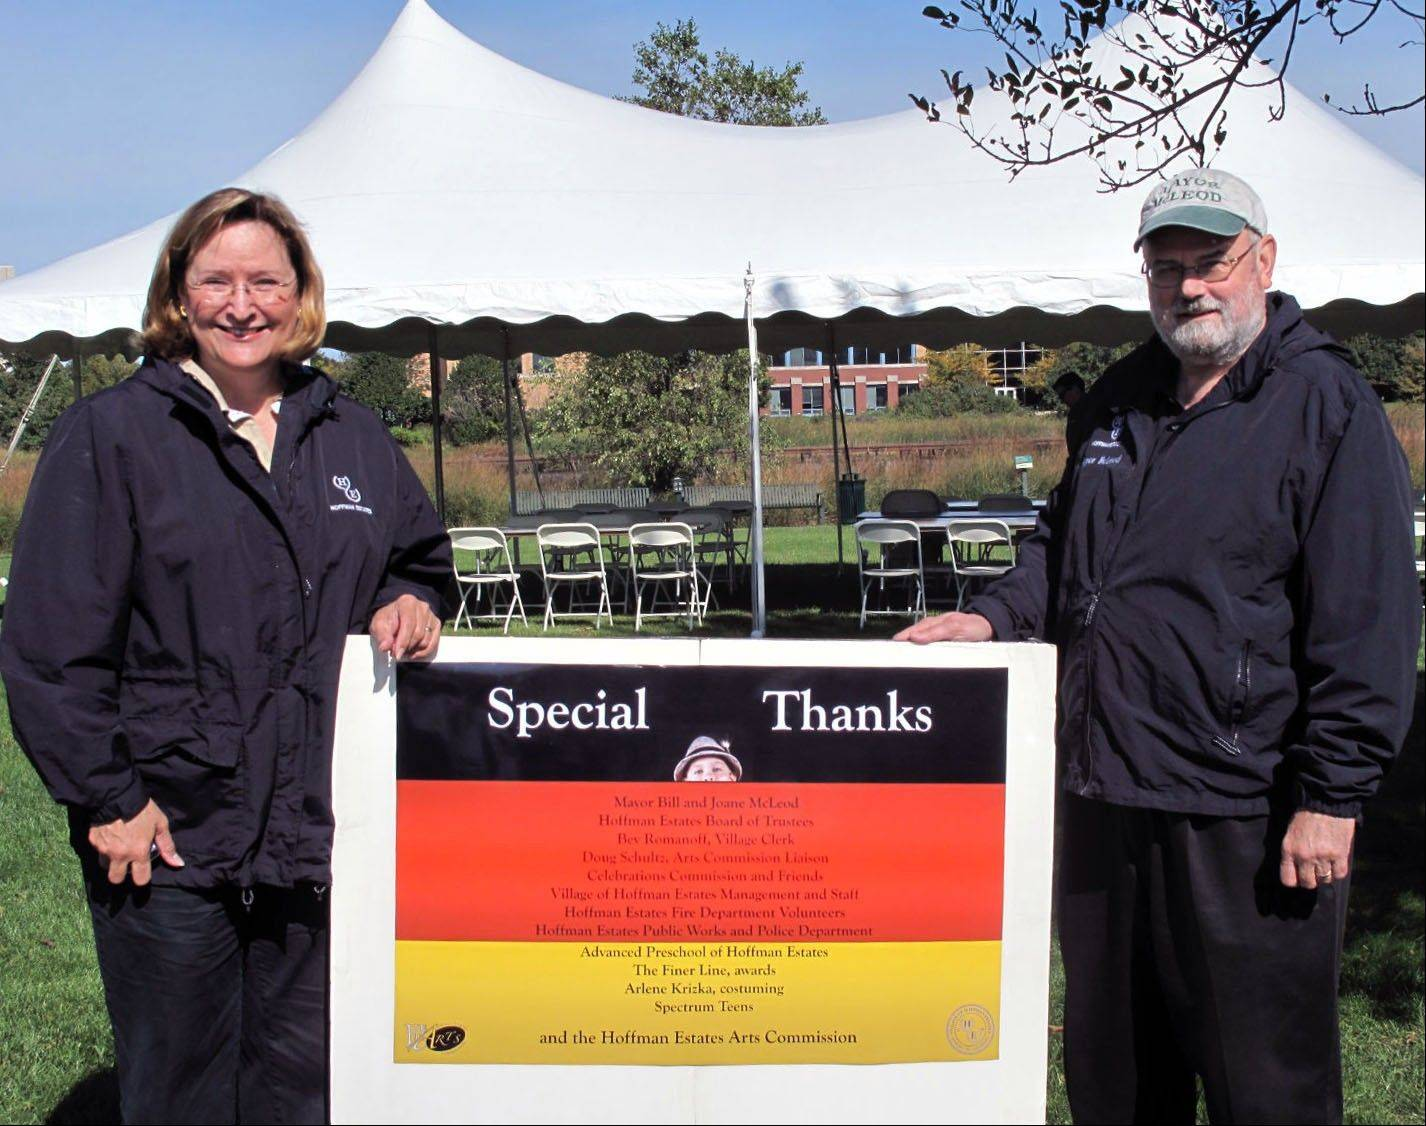 Hoffman Estates Mayor William D. McLeod and his wife, Joane, at the 2010 Platzkonzert Germanfest.